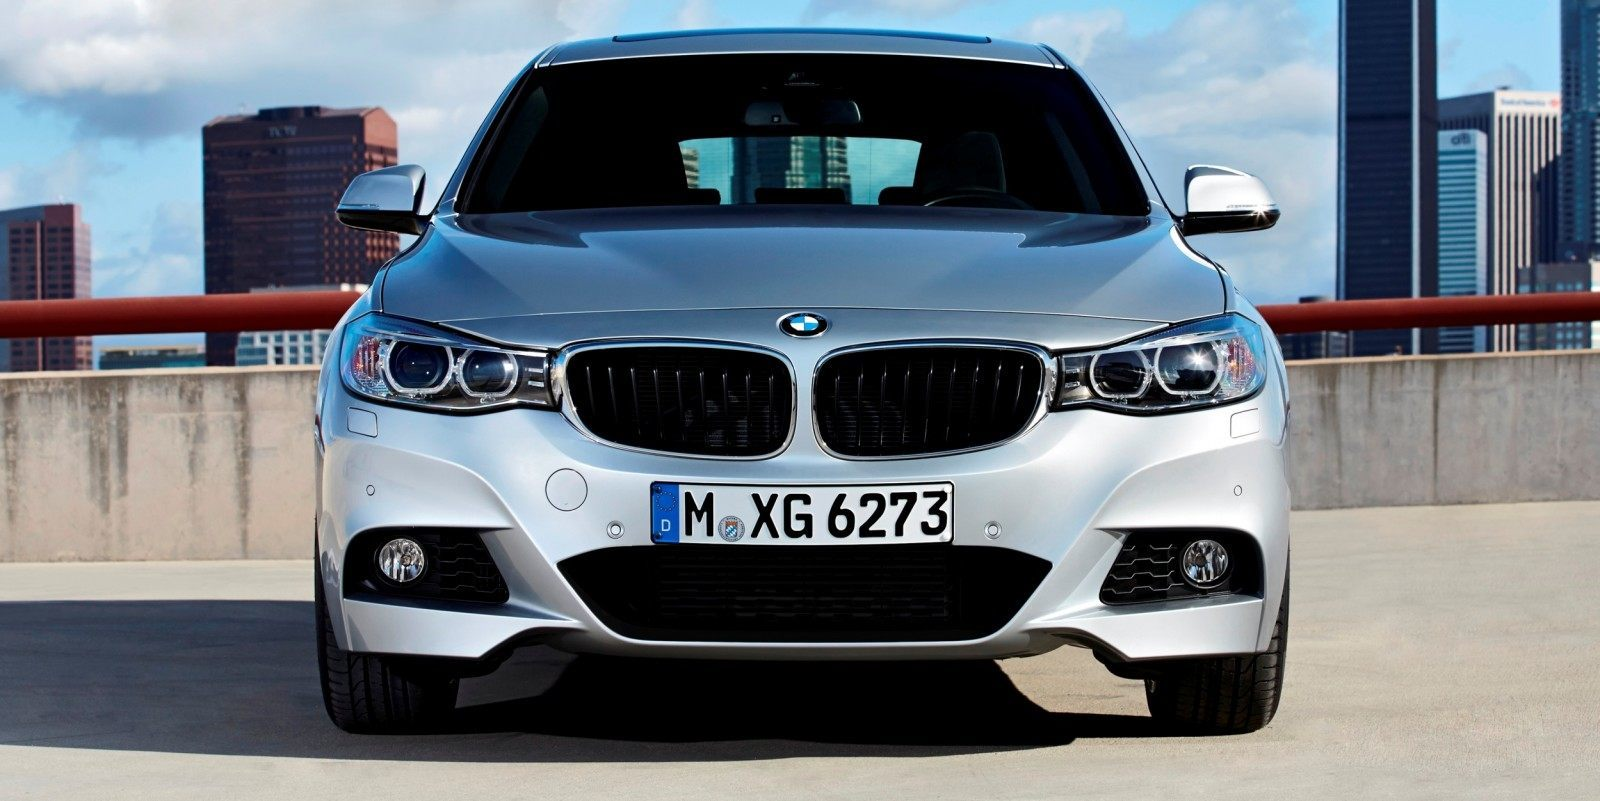 Best of Awards - 1000 miles at 100MPH - 2014 M Sport BMW 335i GT 67